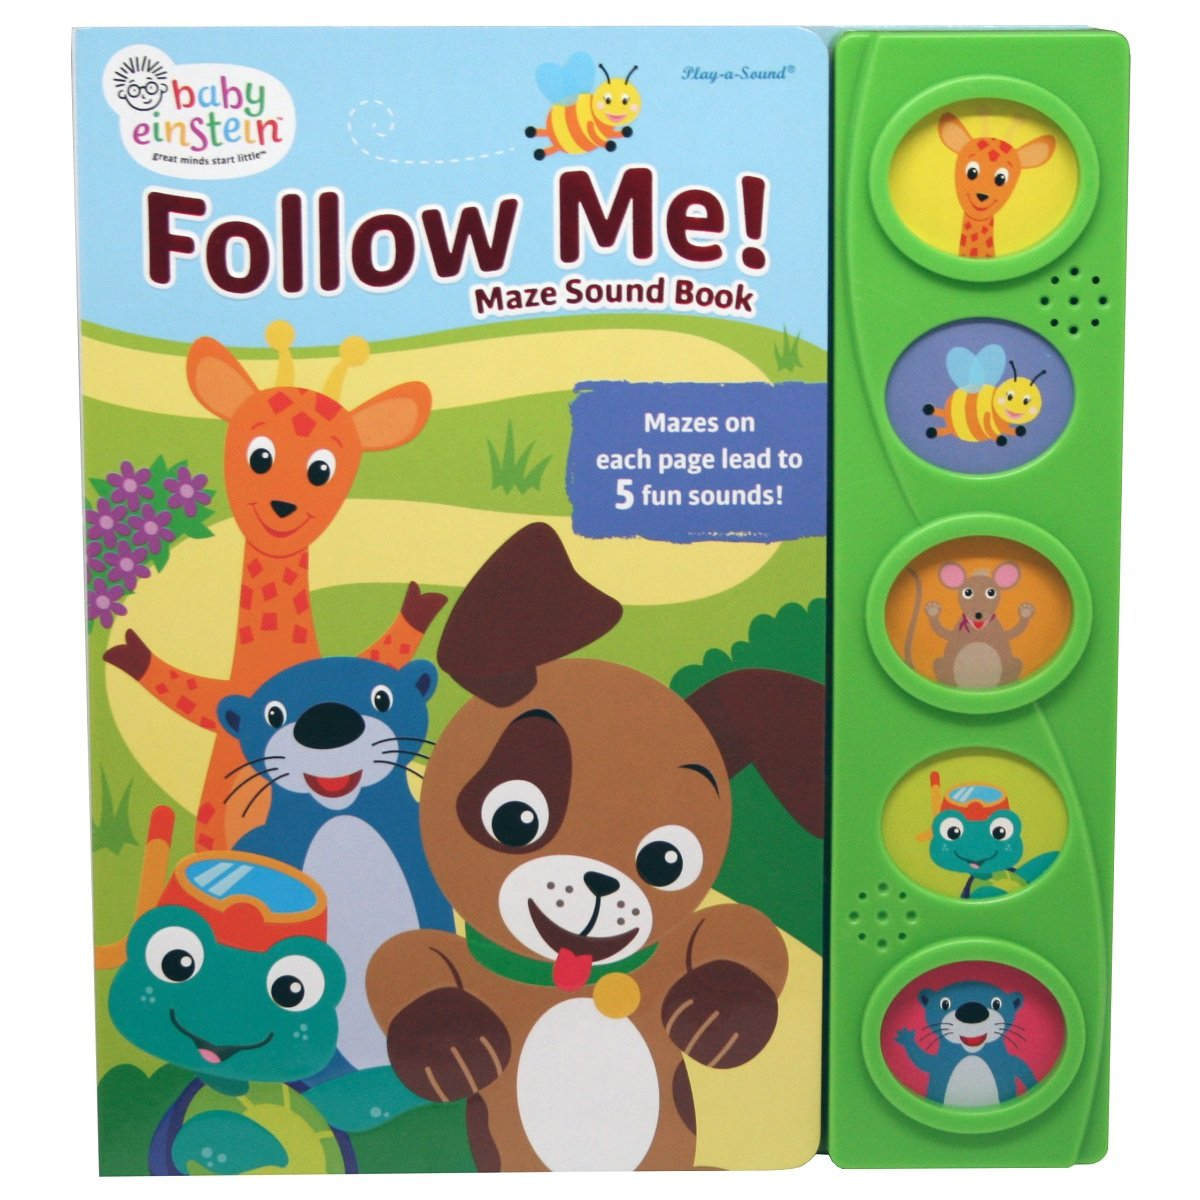 Baby Einstein: Follow Me! Maze Sound Book 9781503711082 by From the Editors of Phoenix International, ISBN: 9781503711082